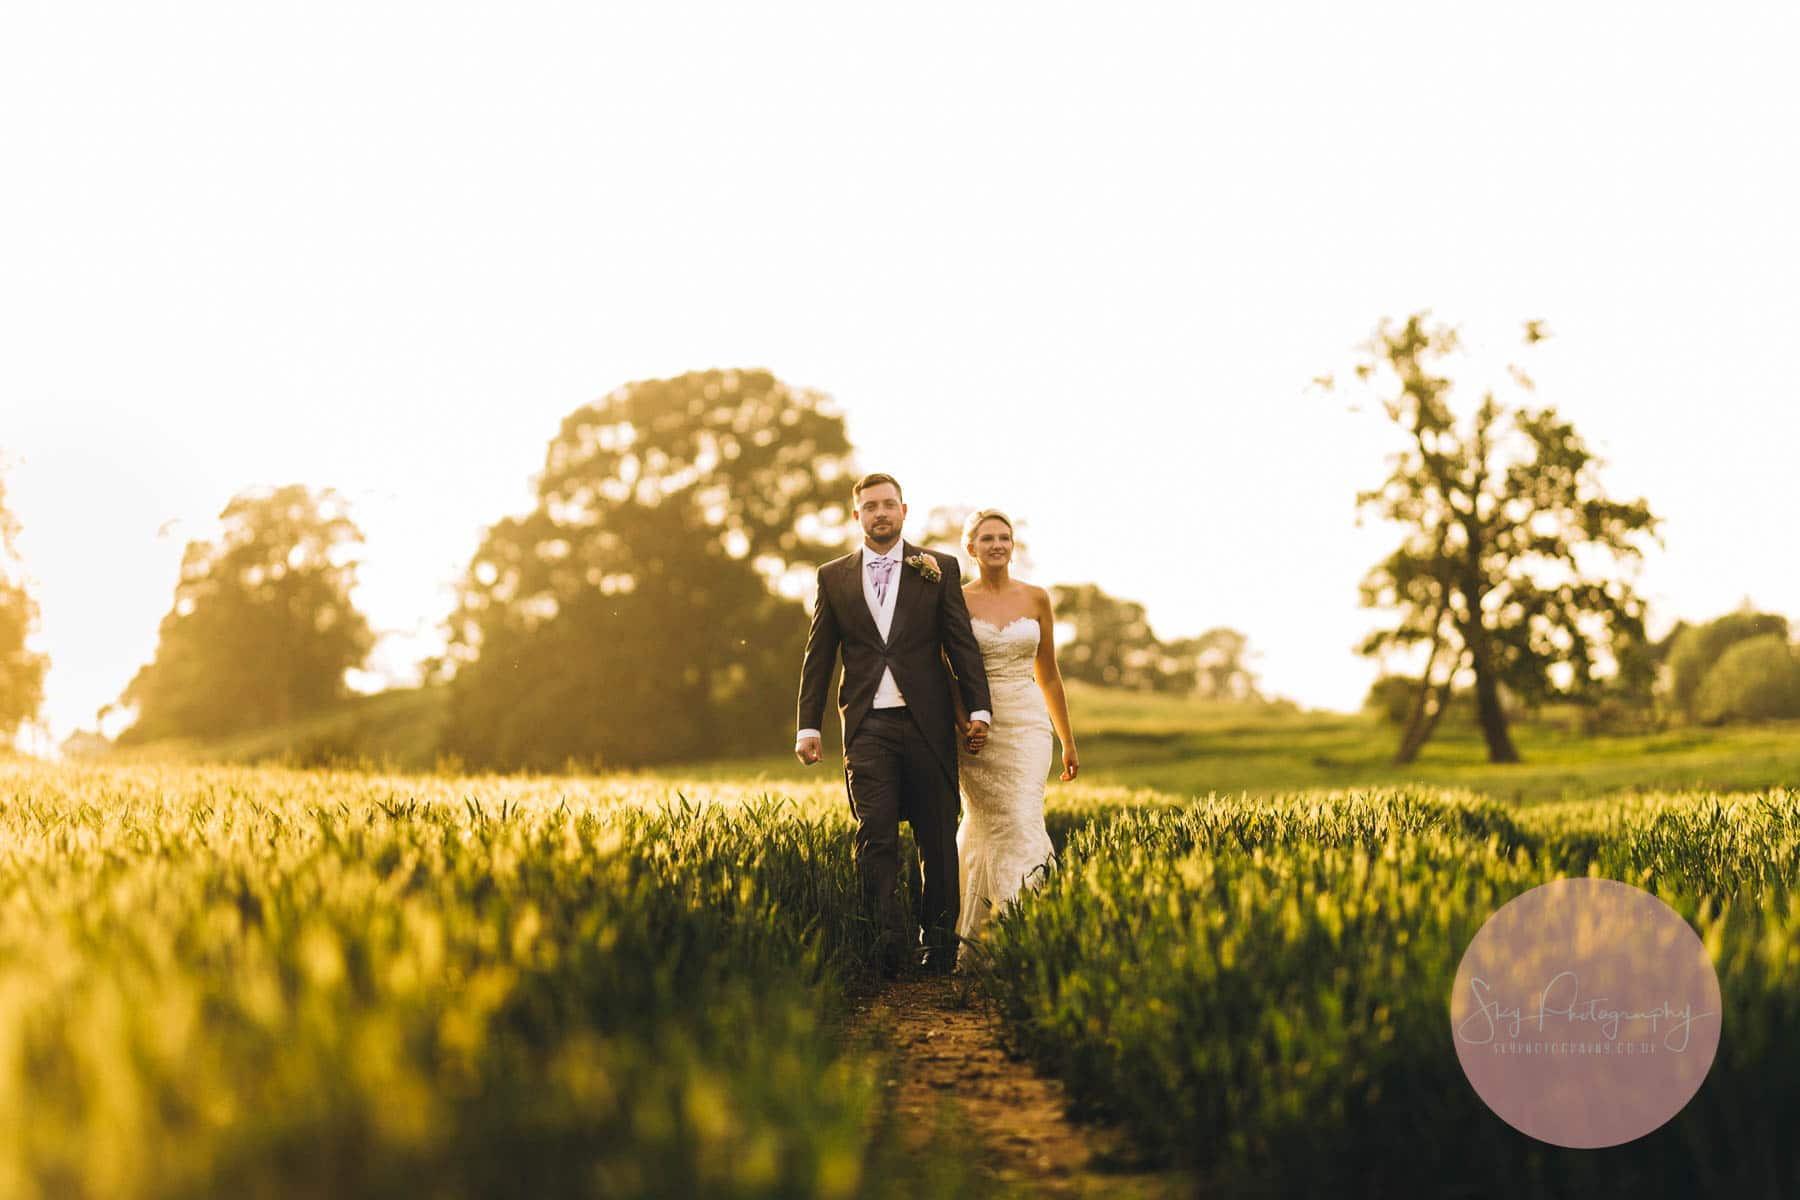 Bride and groom walking through a corn field at dusk golden hour